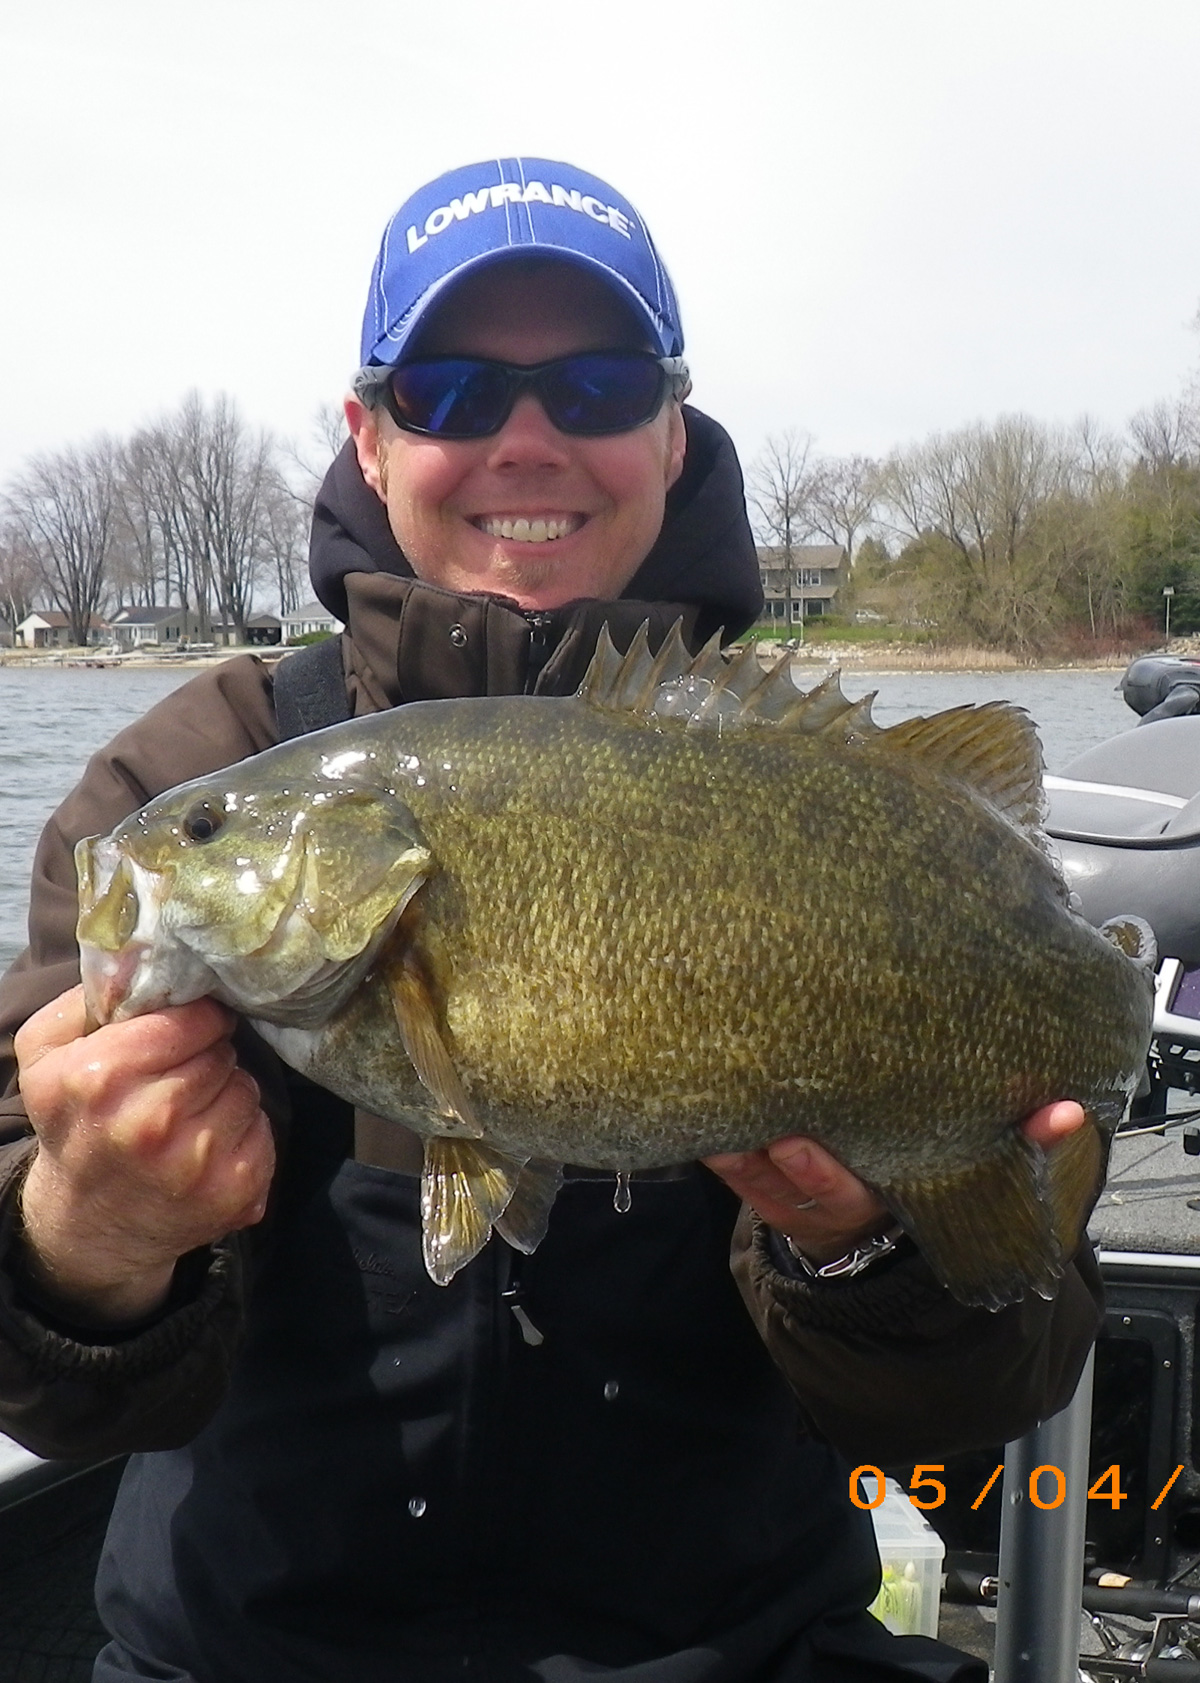 Steve  Kappel Elk Grove Village IL    Species: Smallmouth Bass Date Caught: 05/04/2013 Kept /